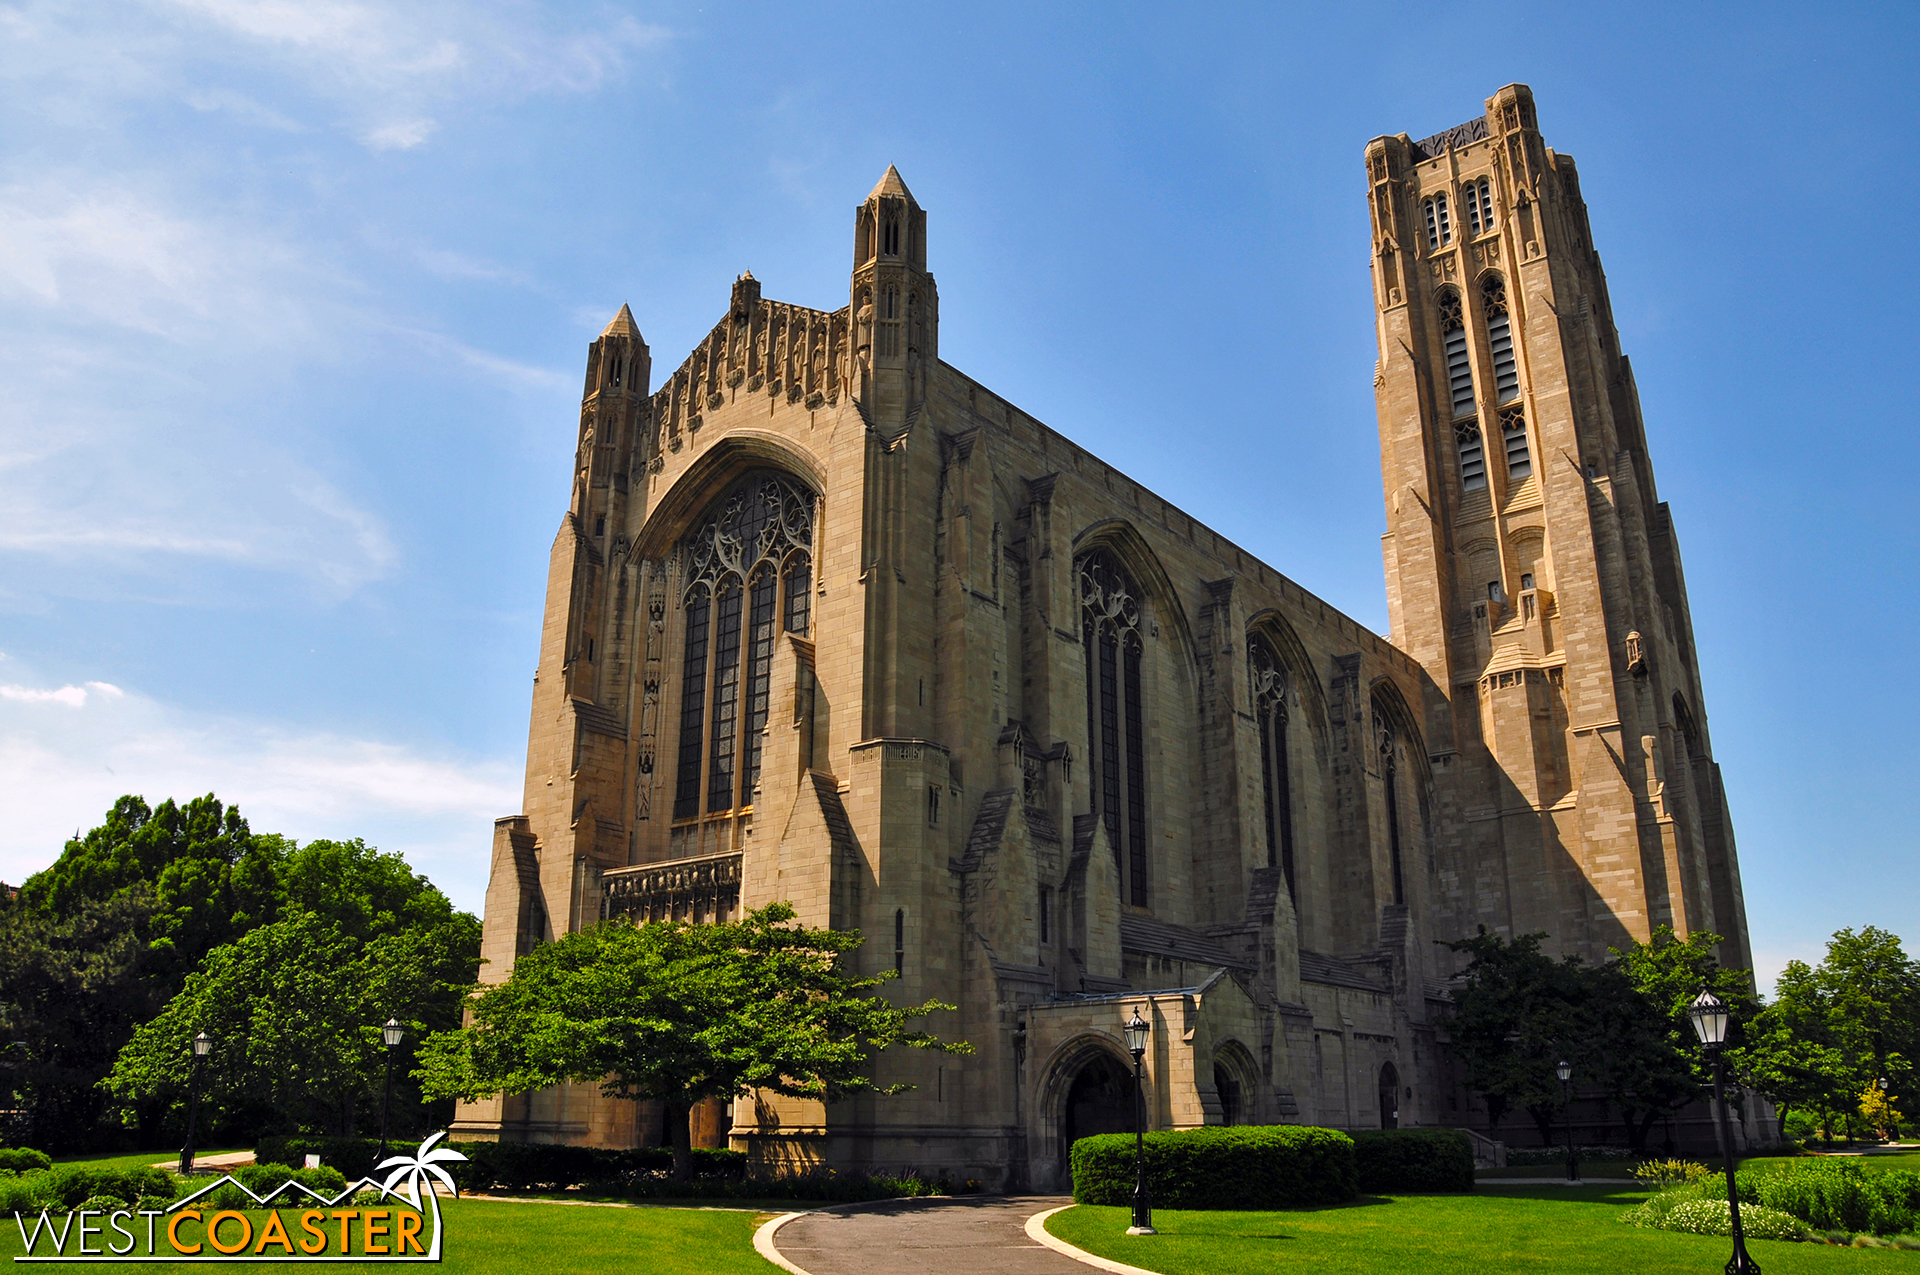 Rockefeller Memorial Chapel, at the University of Chicago, is a Gothic Revival style cathedral.